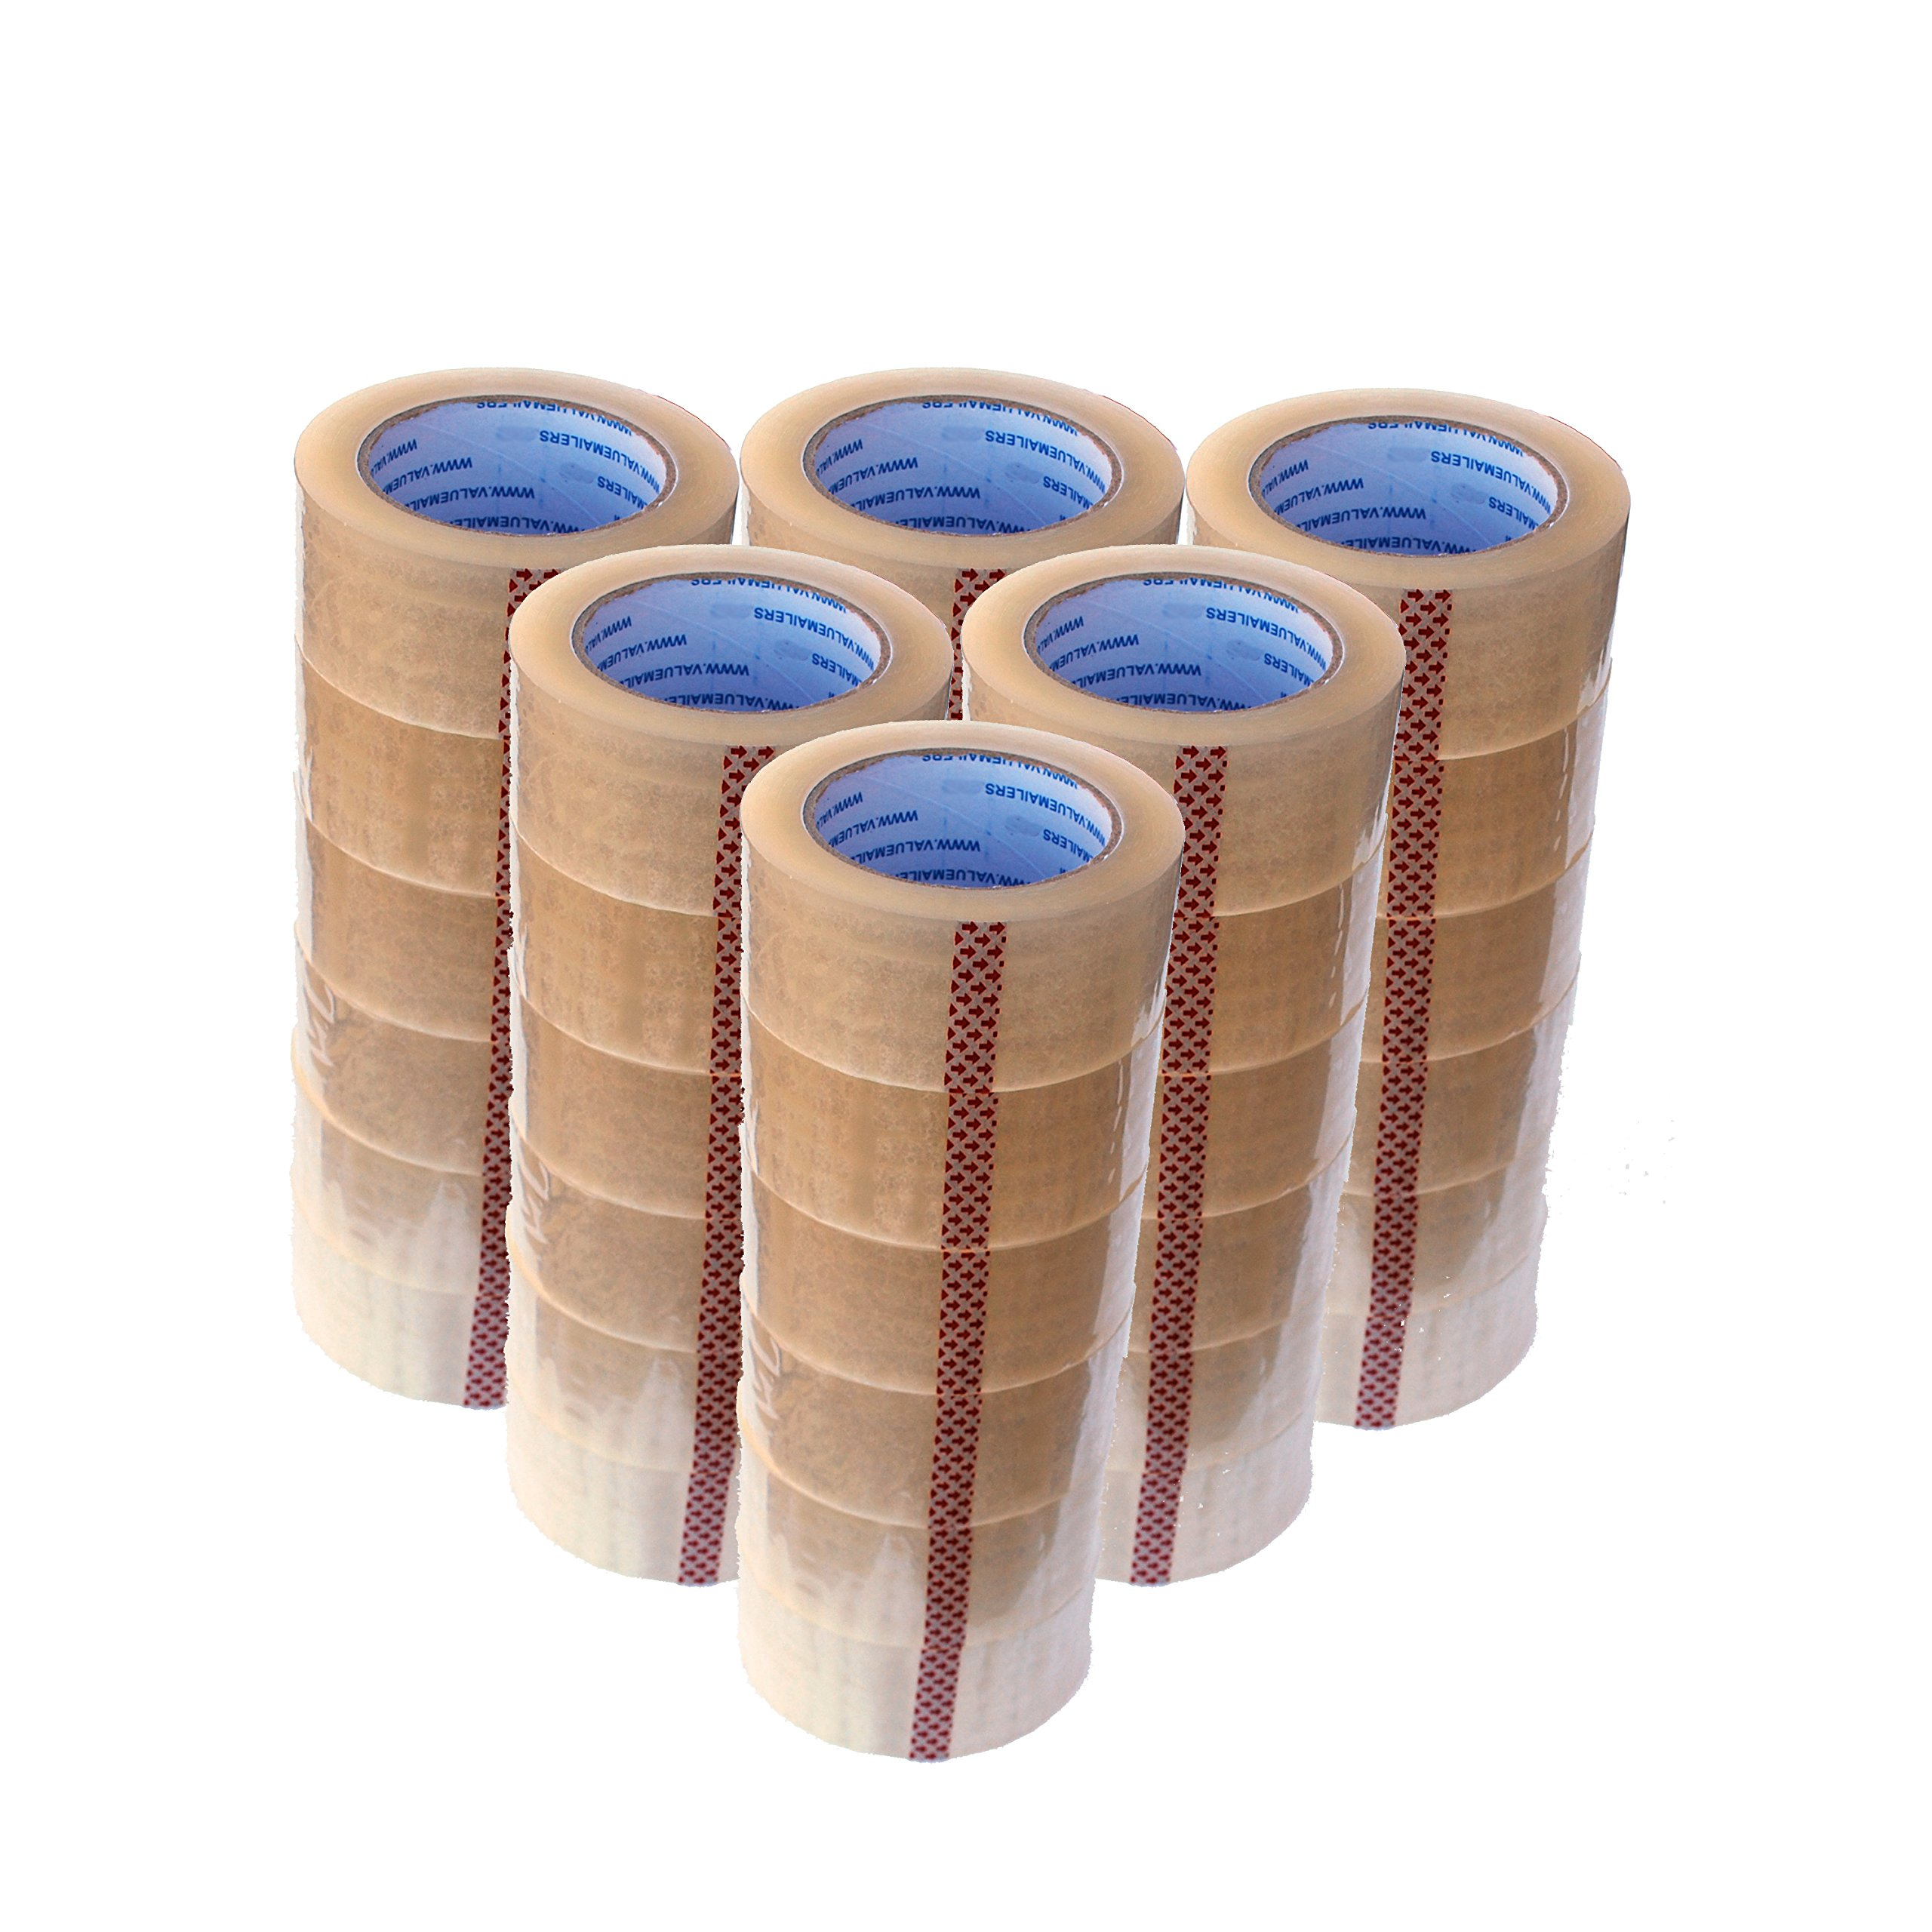 ValueMailers Carton Sealing Tape 2'' X 110 Yards Per Roll - 36 rolls 2 Mil Thick by ValueMailers